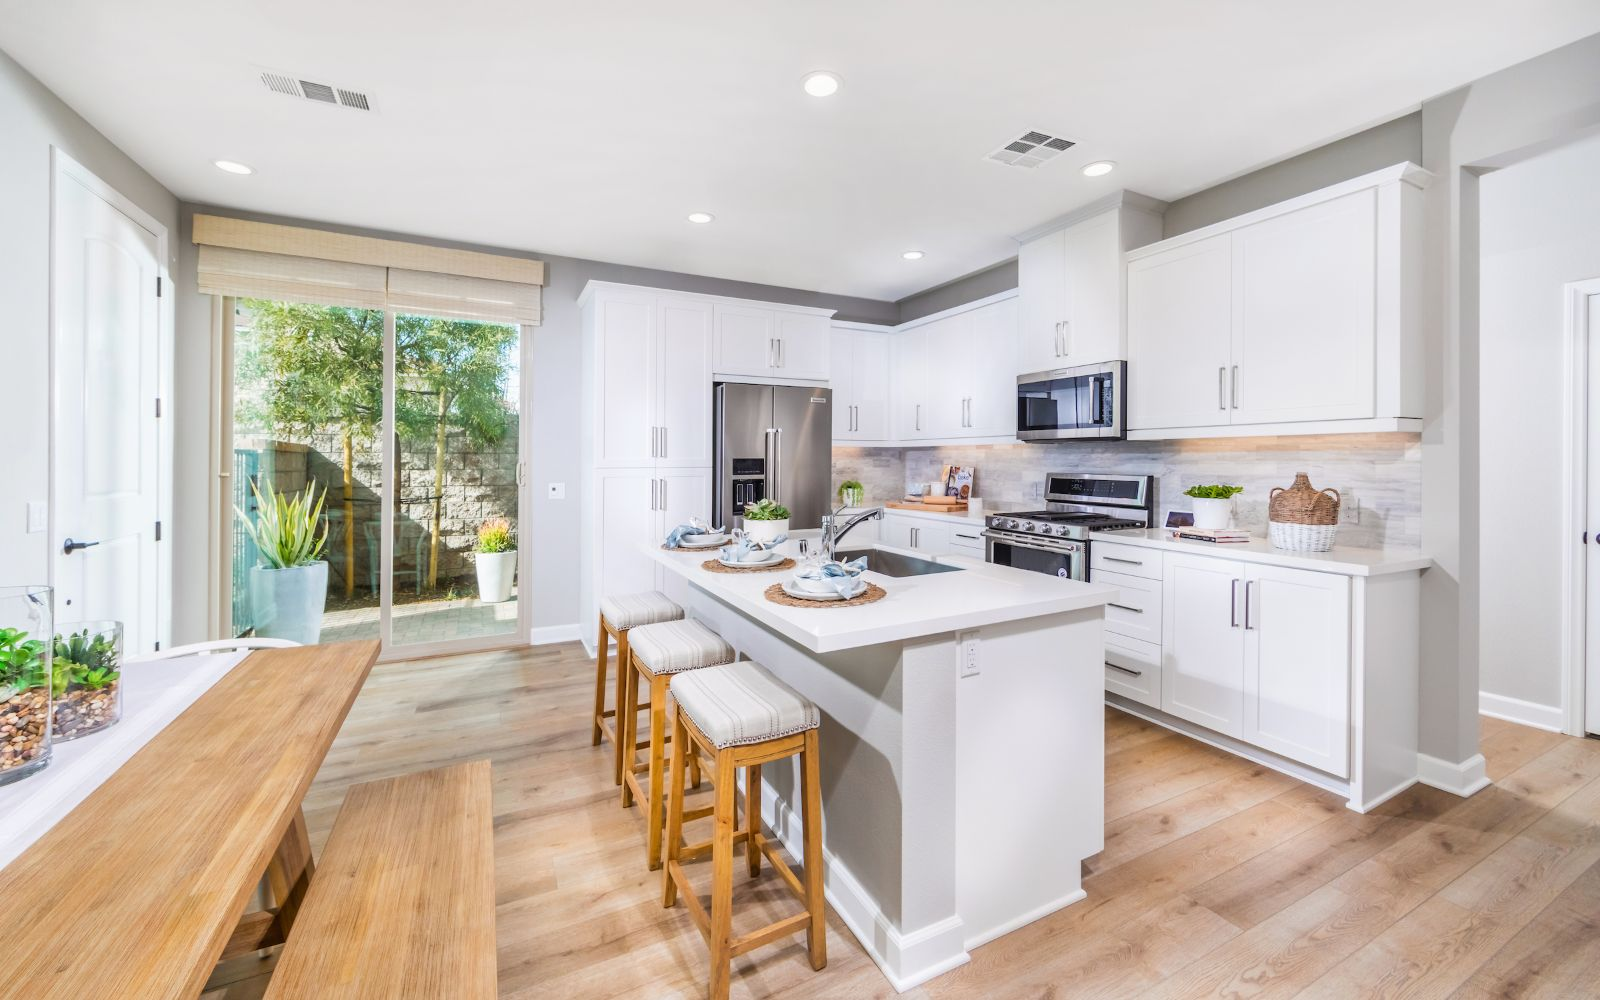 Towns Plan 6 Kitchen | Lantana @Beach in Stanton, CA | Brookfield Residential